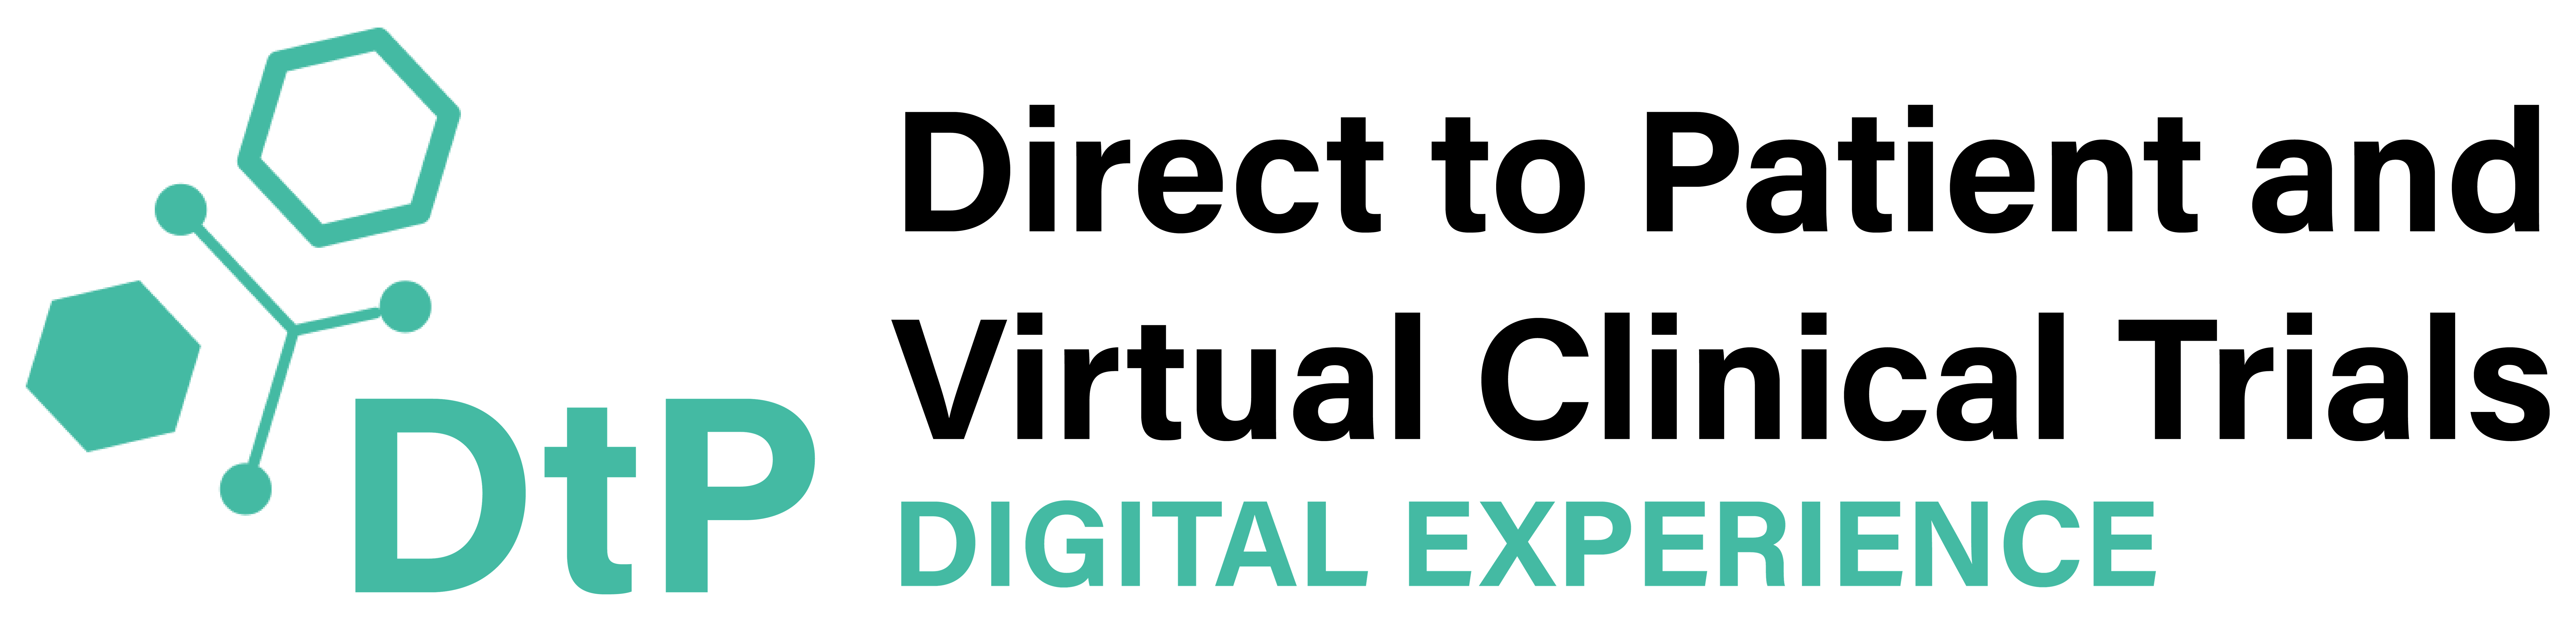 Arena International Announces the Brand New Direct-to-Patient and Virtual Clinical Trials Digital Experience